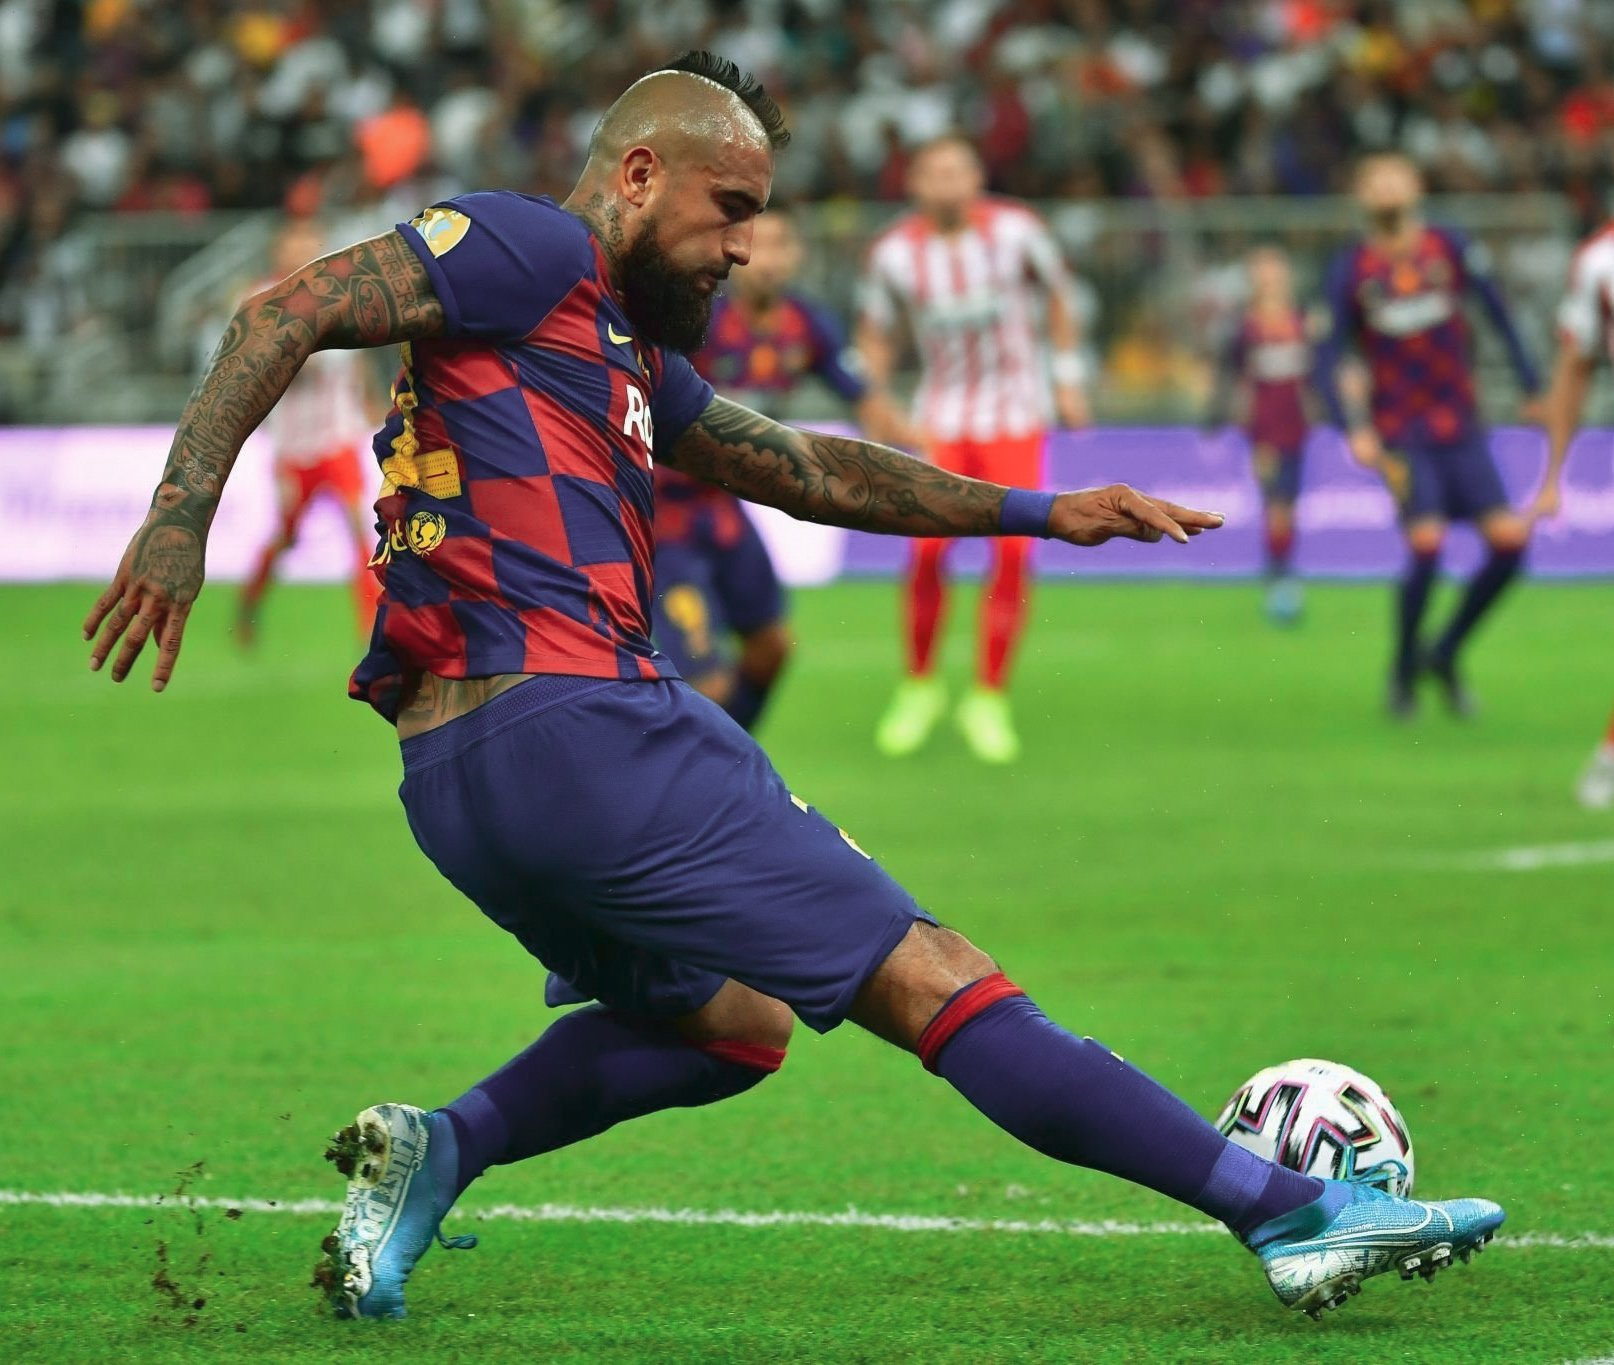 Image of Vidal in the Super Copa